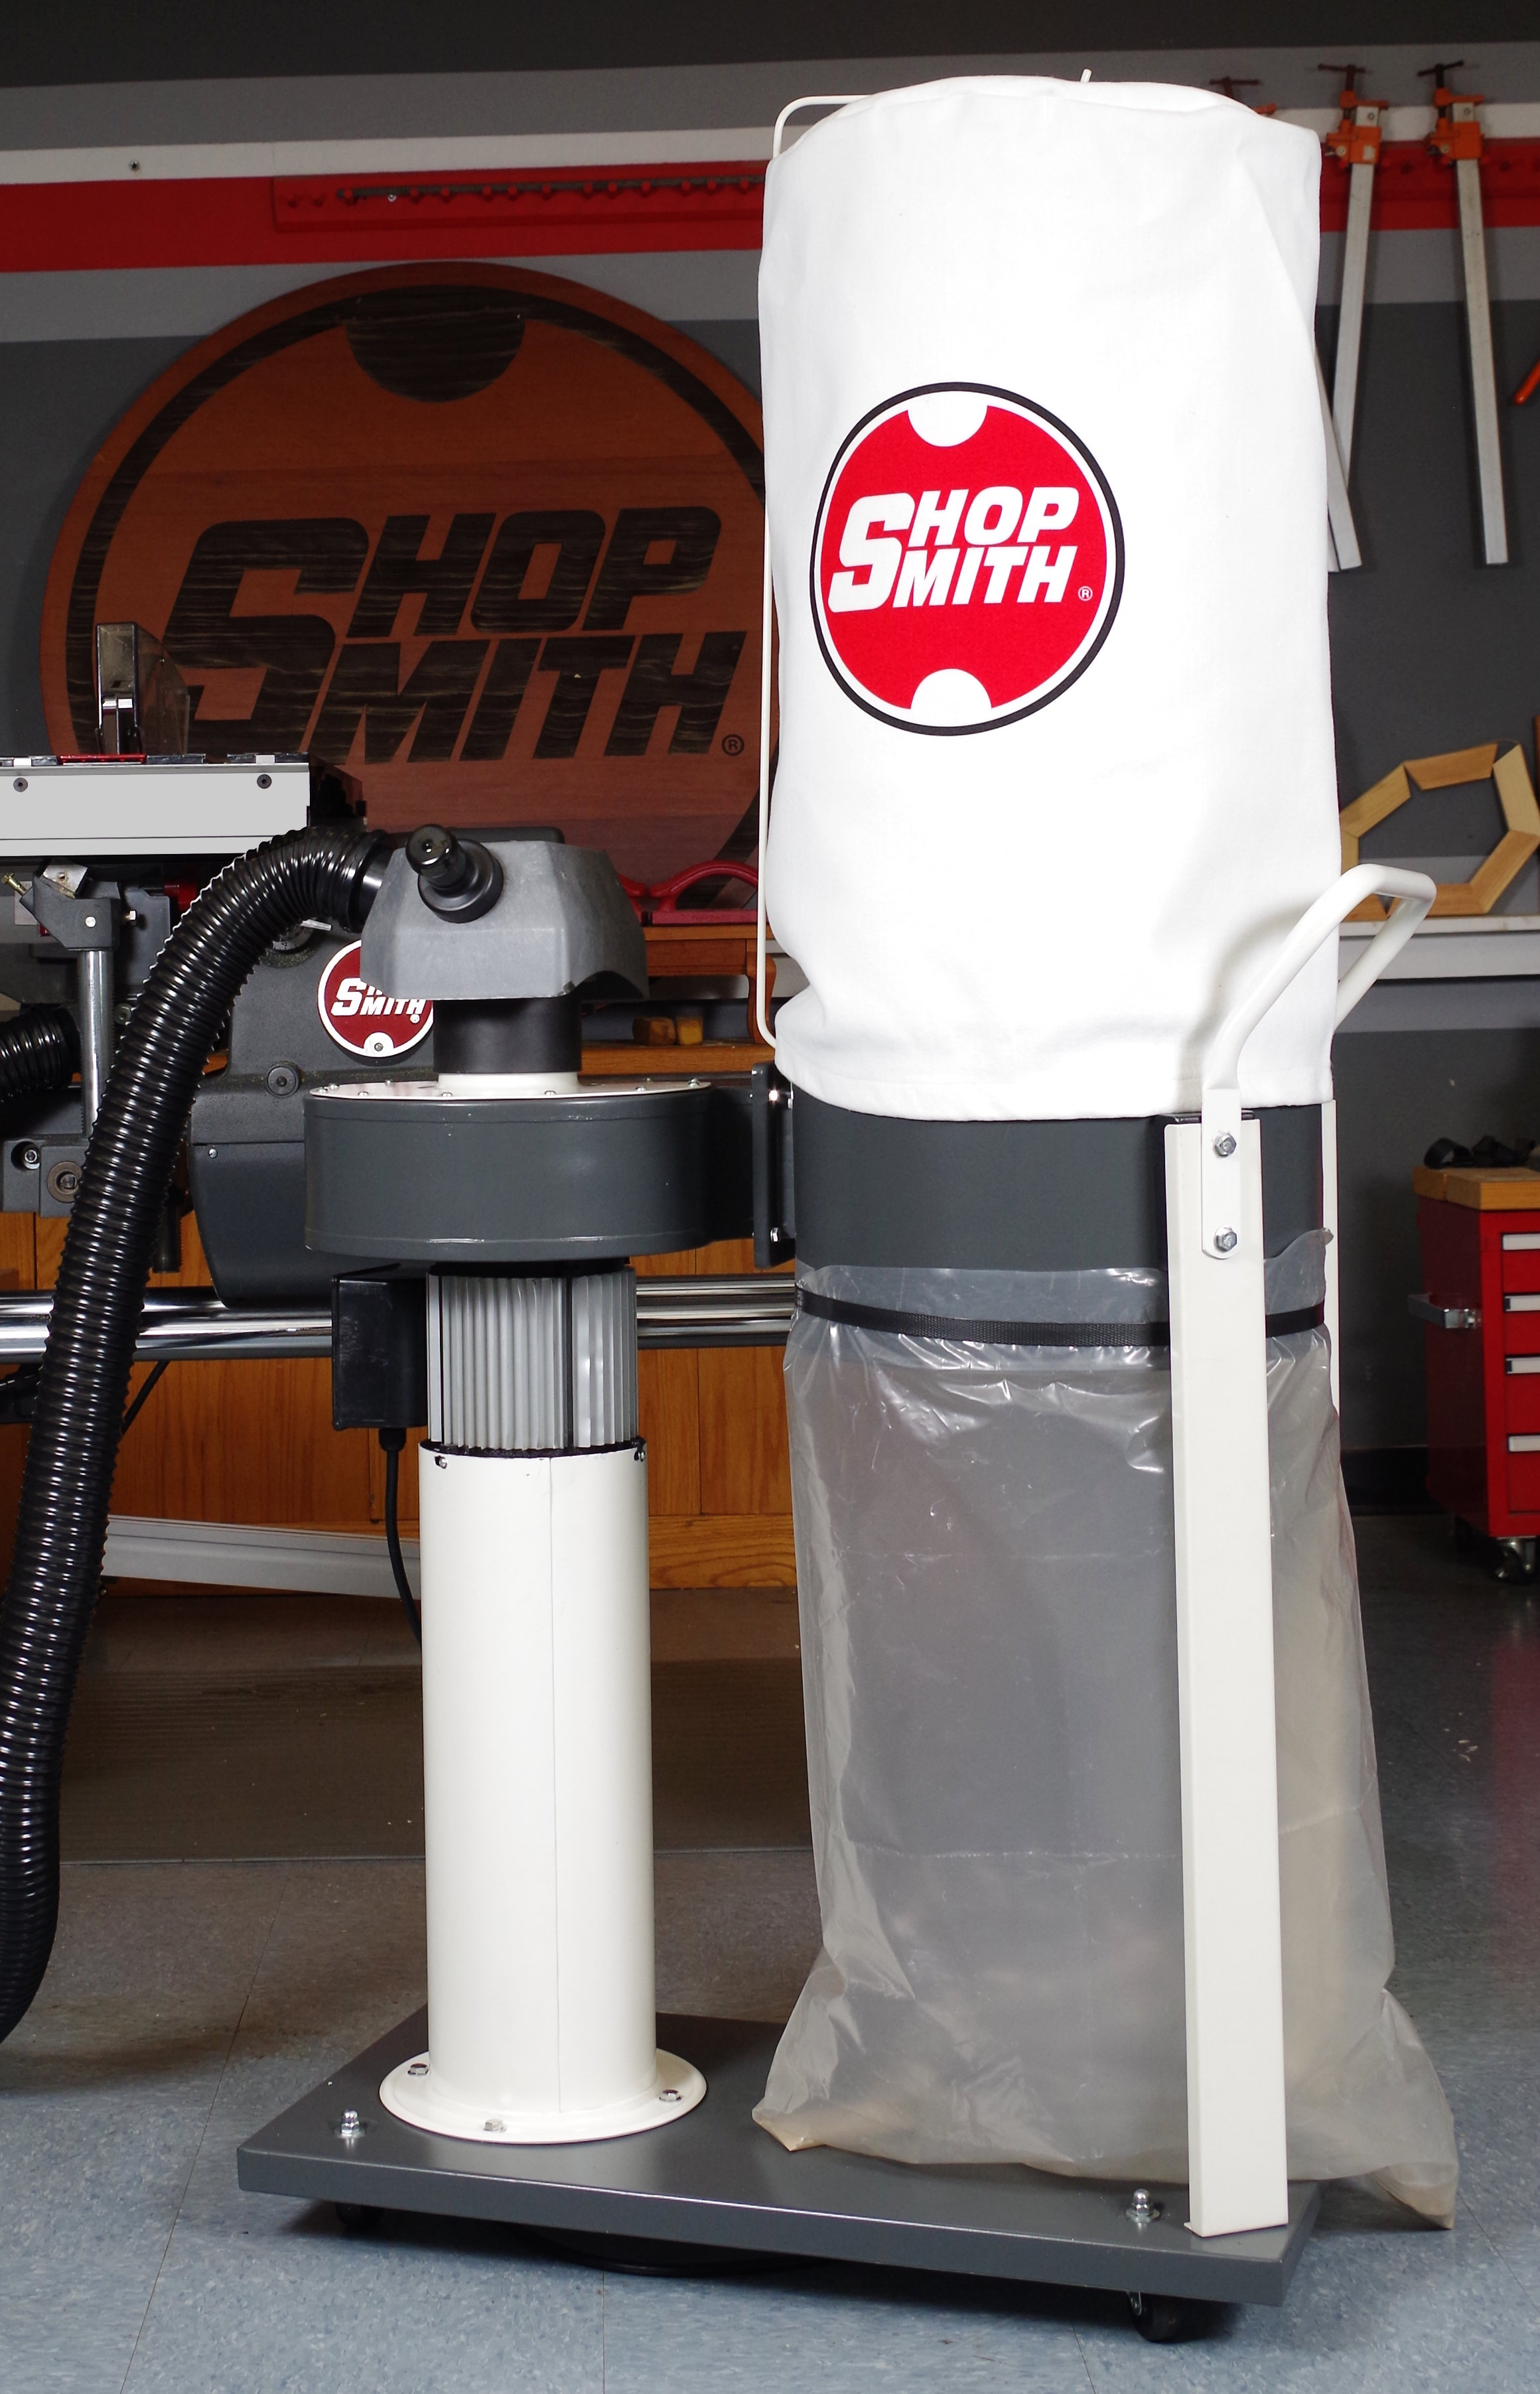 Shopsmith DC330L Dust Collector